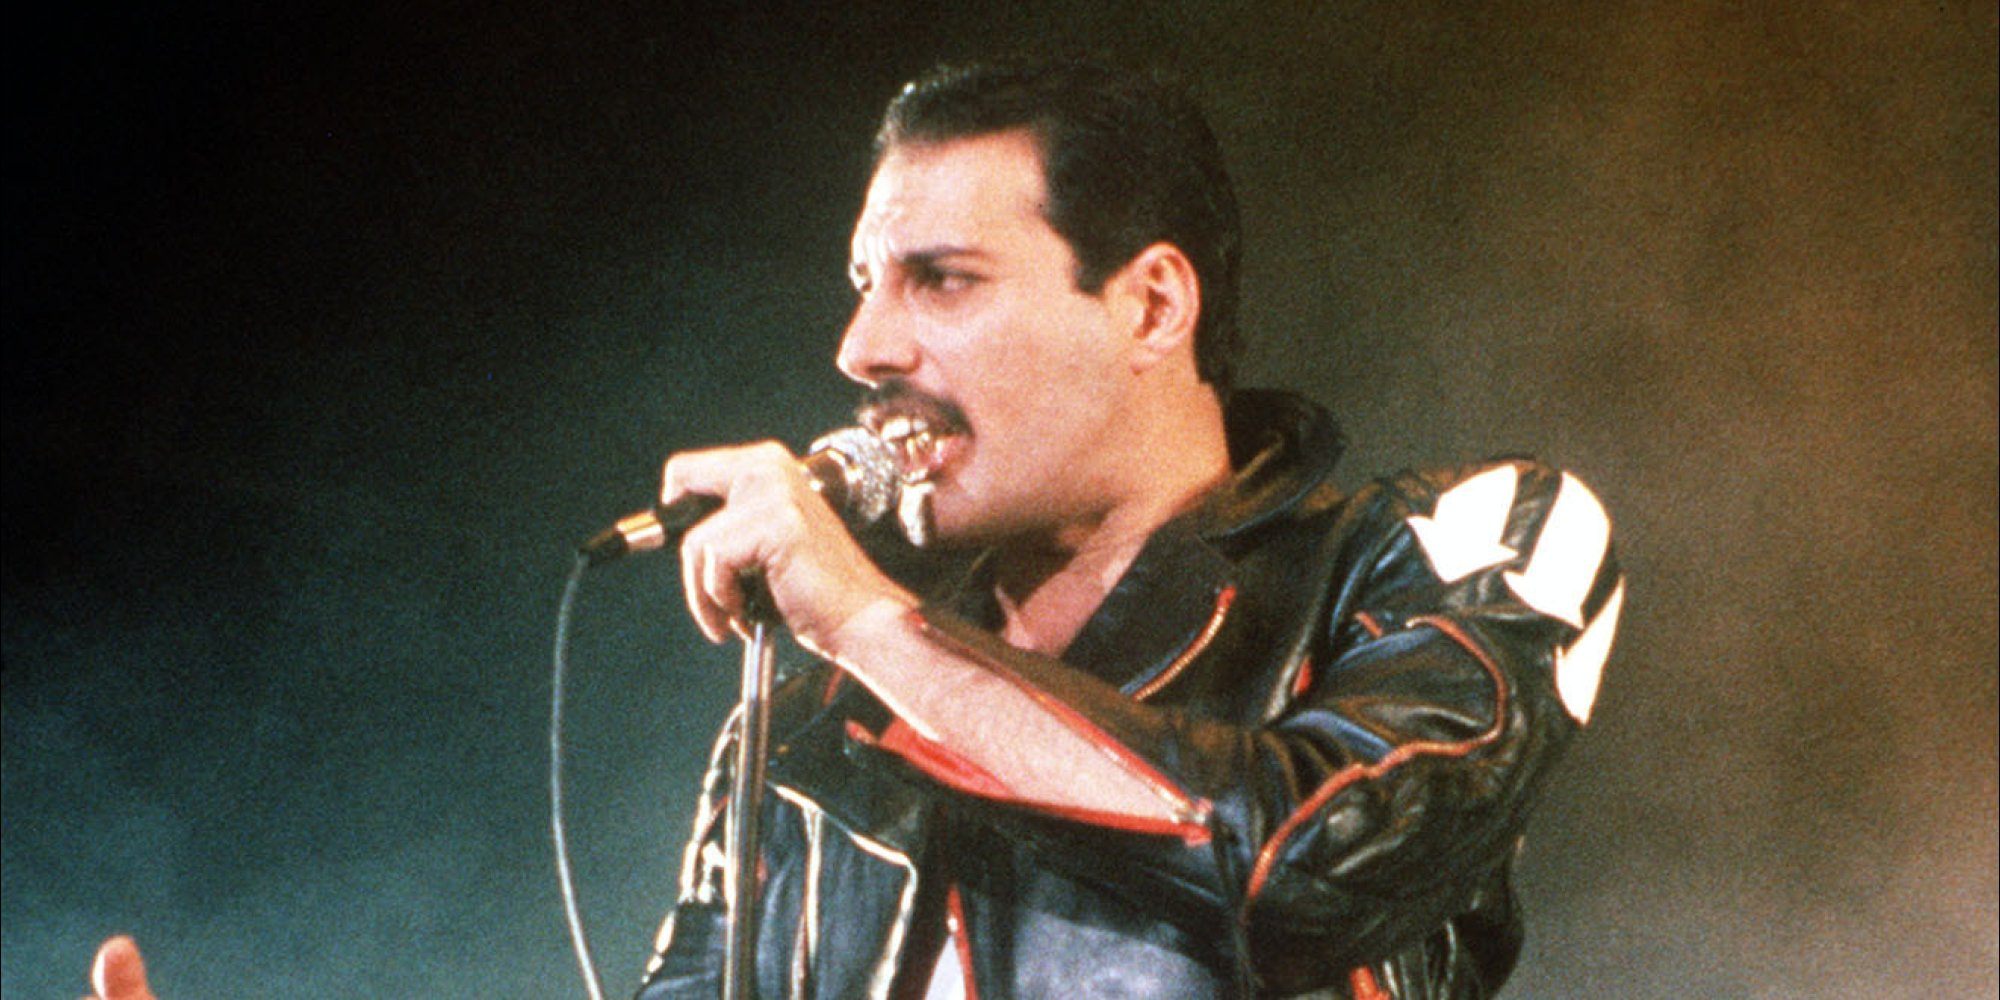 freddie mercury - photo #19